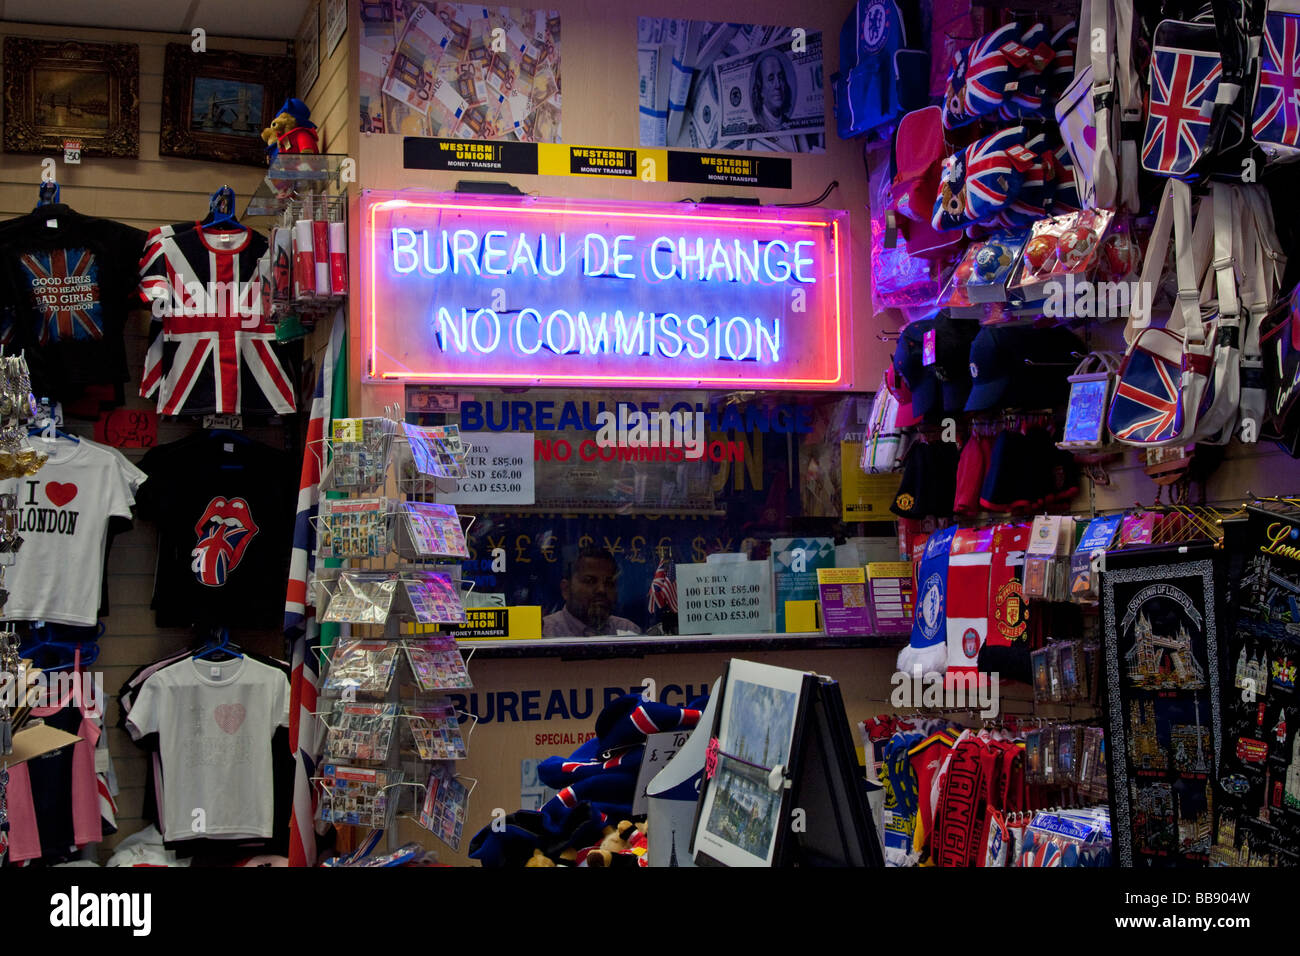 Bureau De Change in tourist Souvenirs & gift shop Westminster London - Stock Image